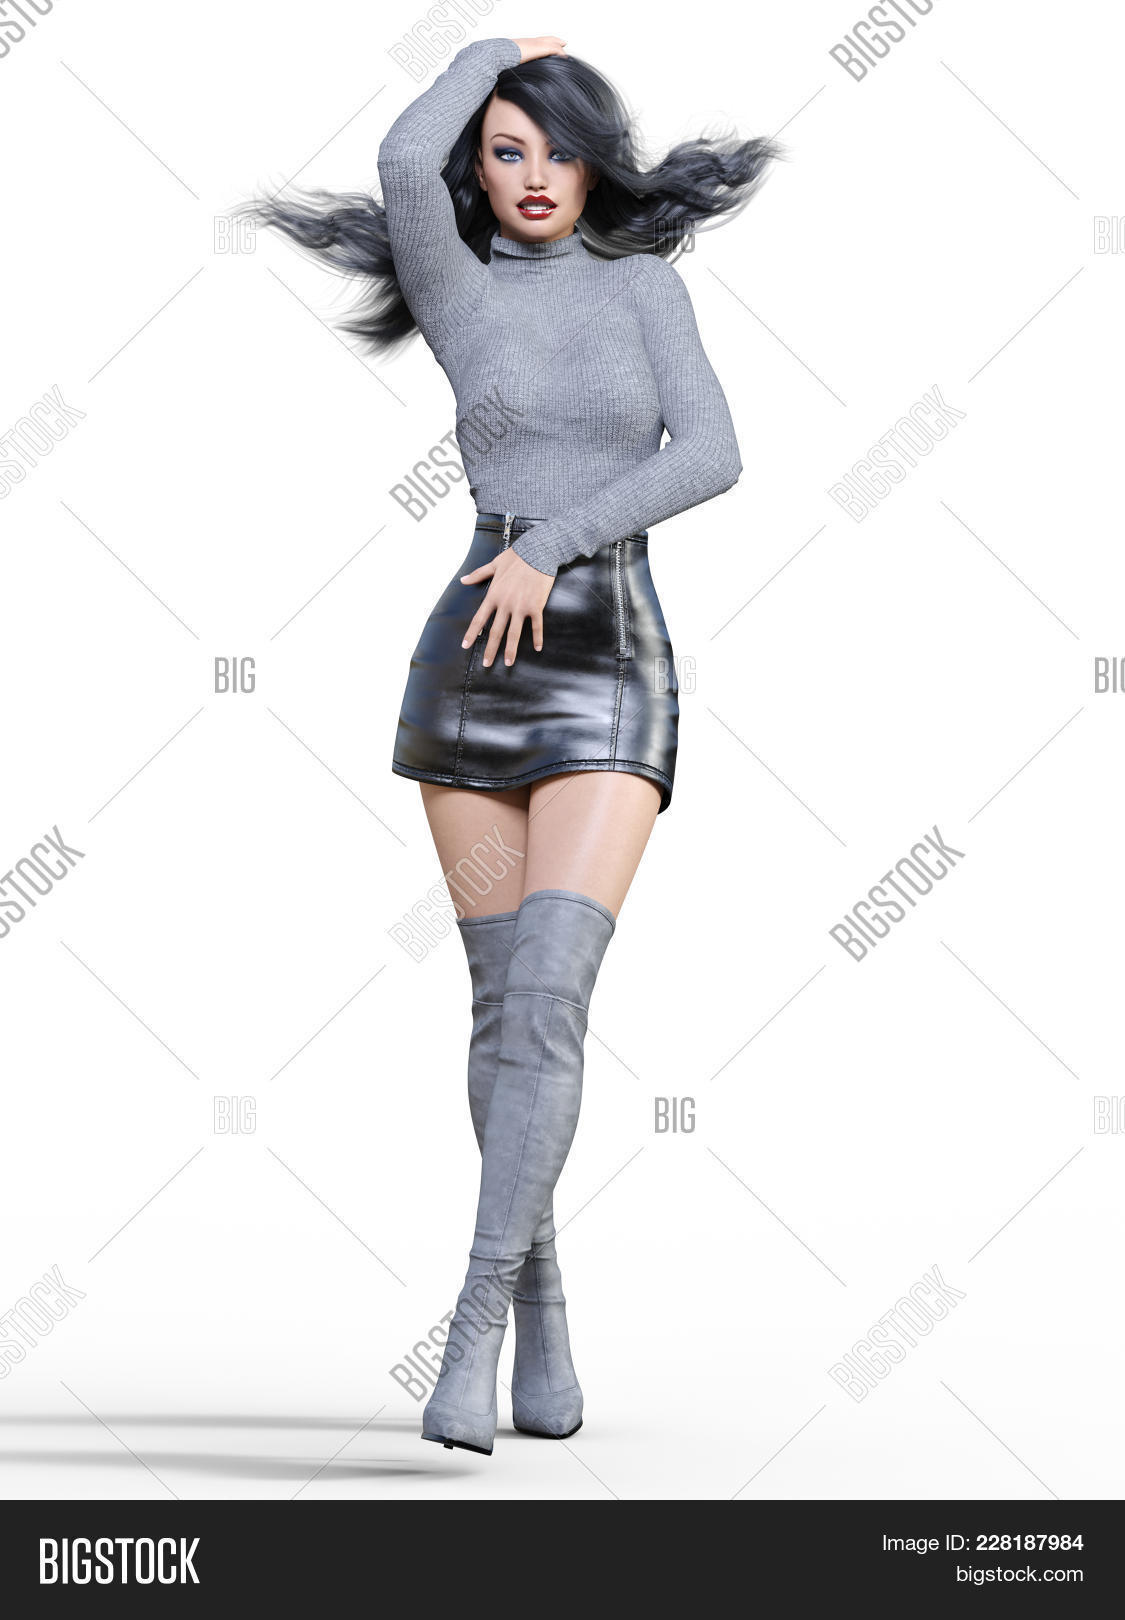 fcb9f69b6f0 3d Beautiful Woman In Short Black Leather Skirt And Long Boots.gray  Pullover.bright